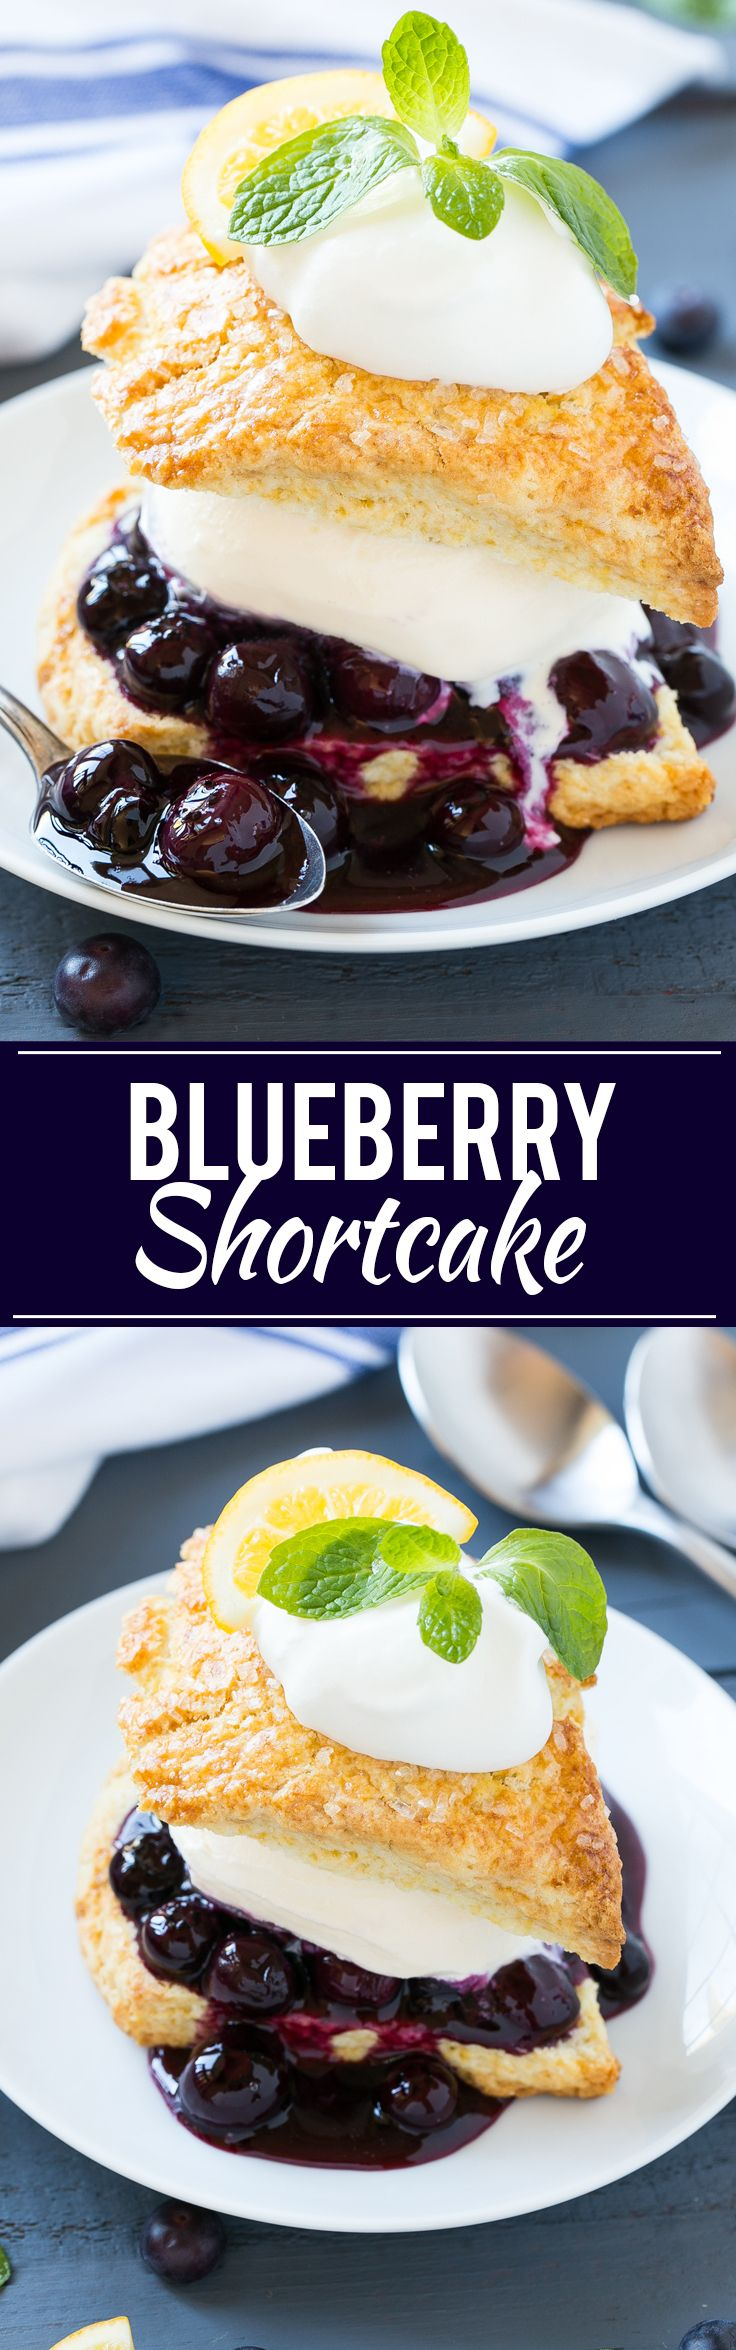 Best of Home and Garden: Blueberry Shortcake - Dinner at the Zoo